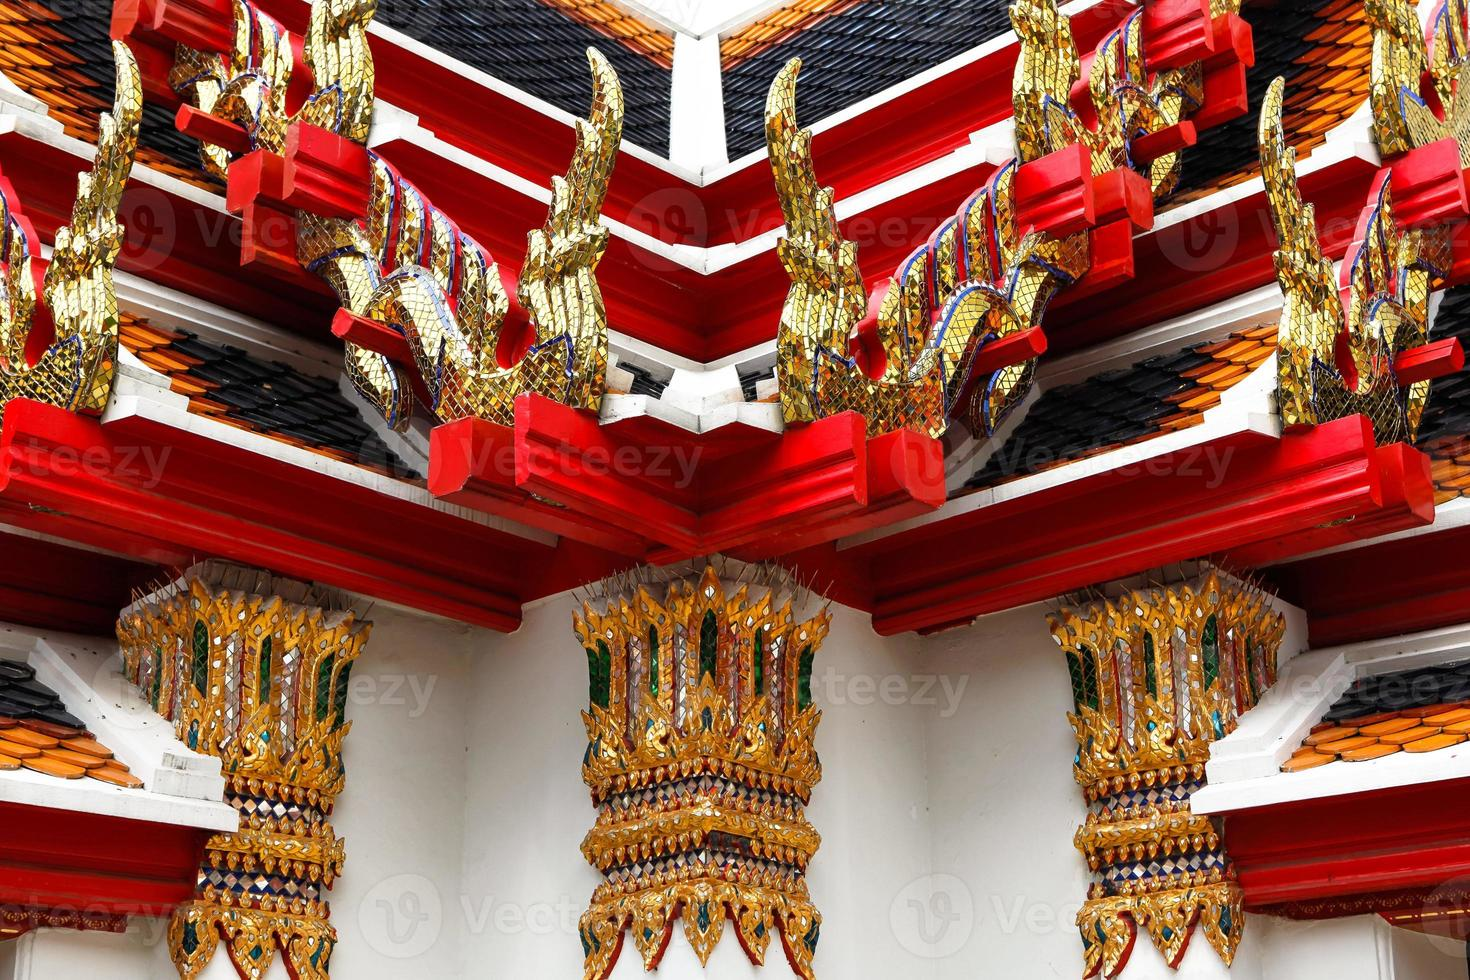 decorative elements of a Buddhist temple photo